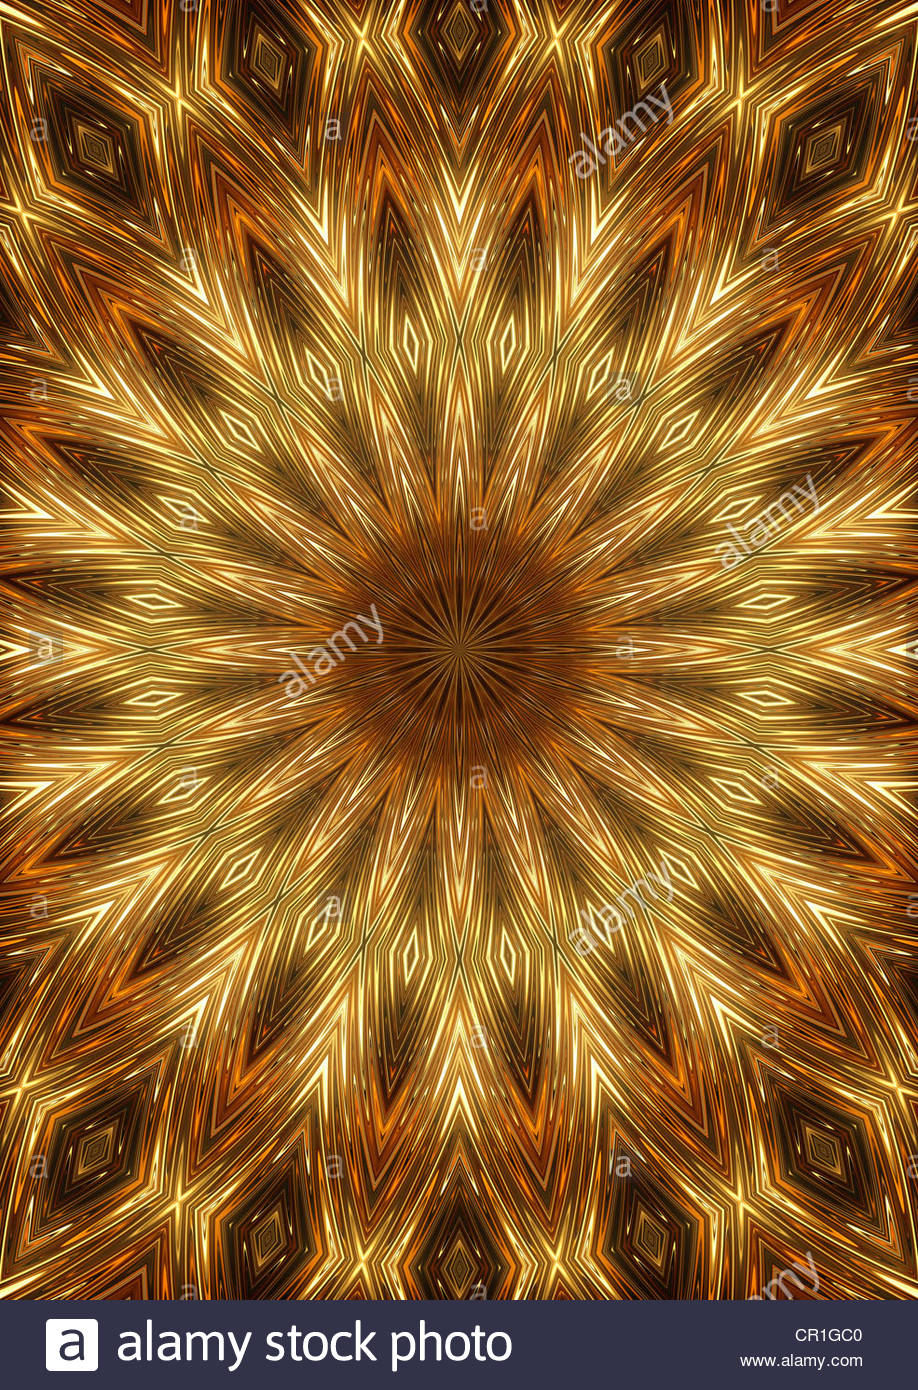 Brown And Yellow Living Room Decor: Concentric Circles Drawing Stock Photos & Concentric